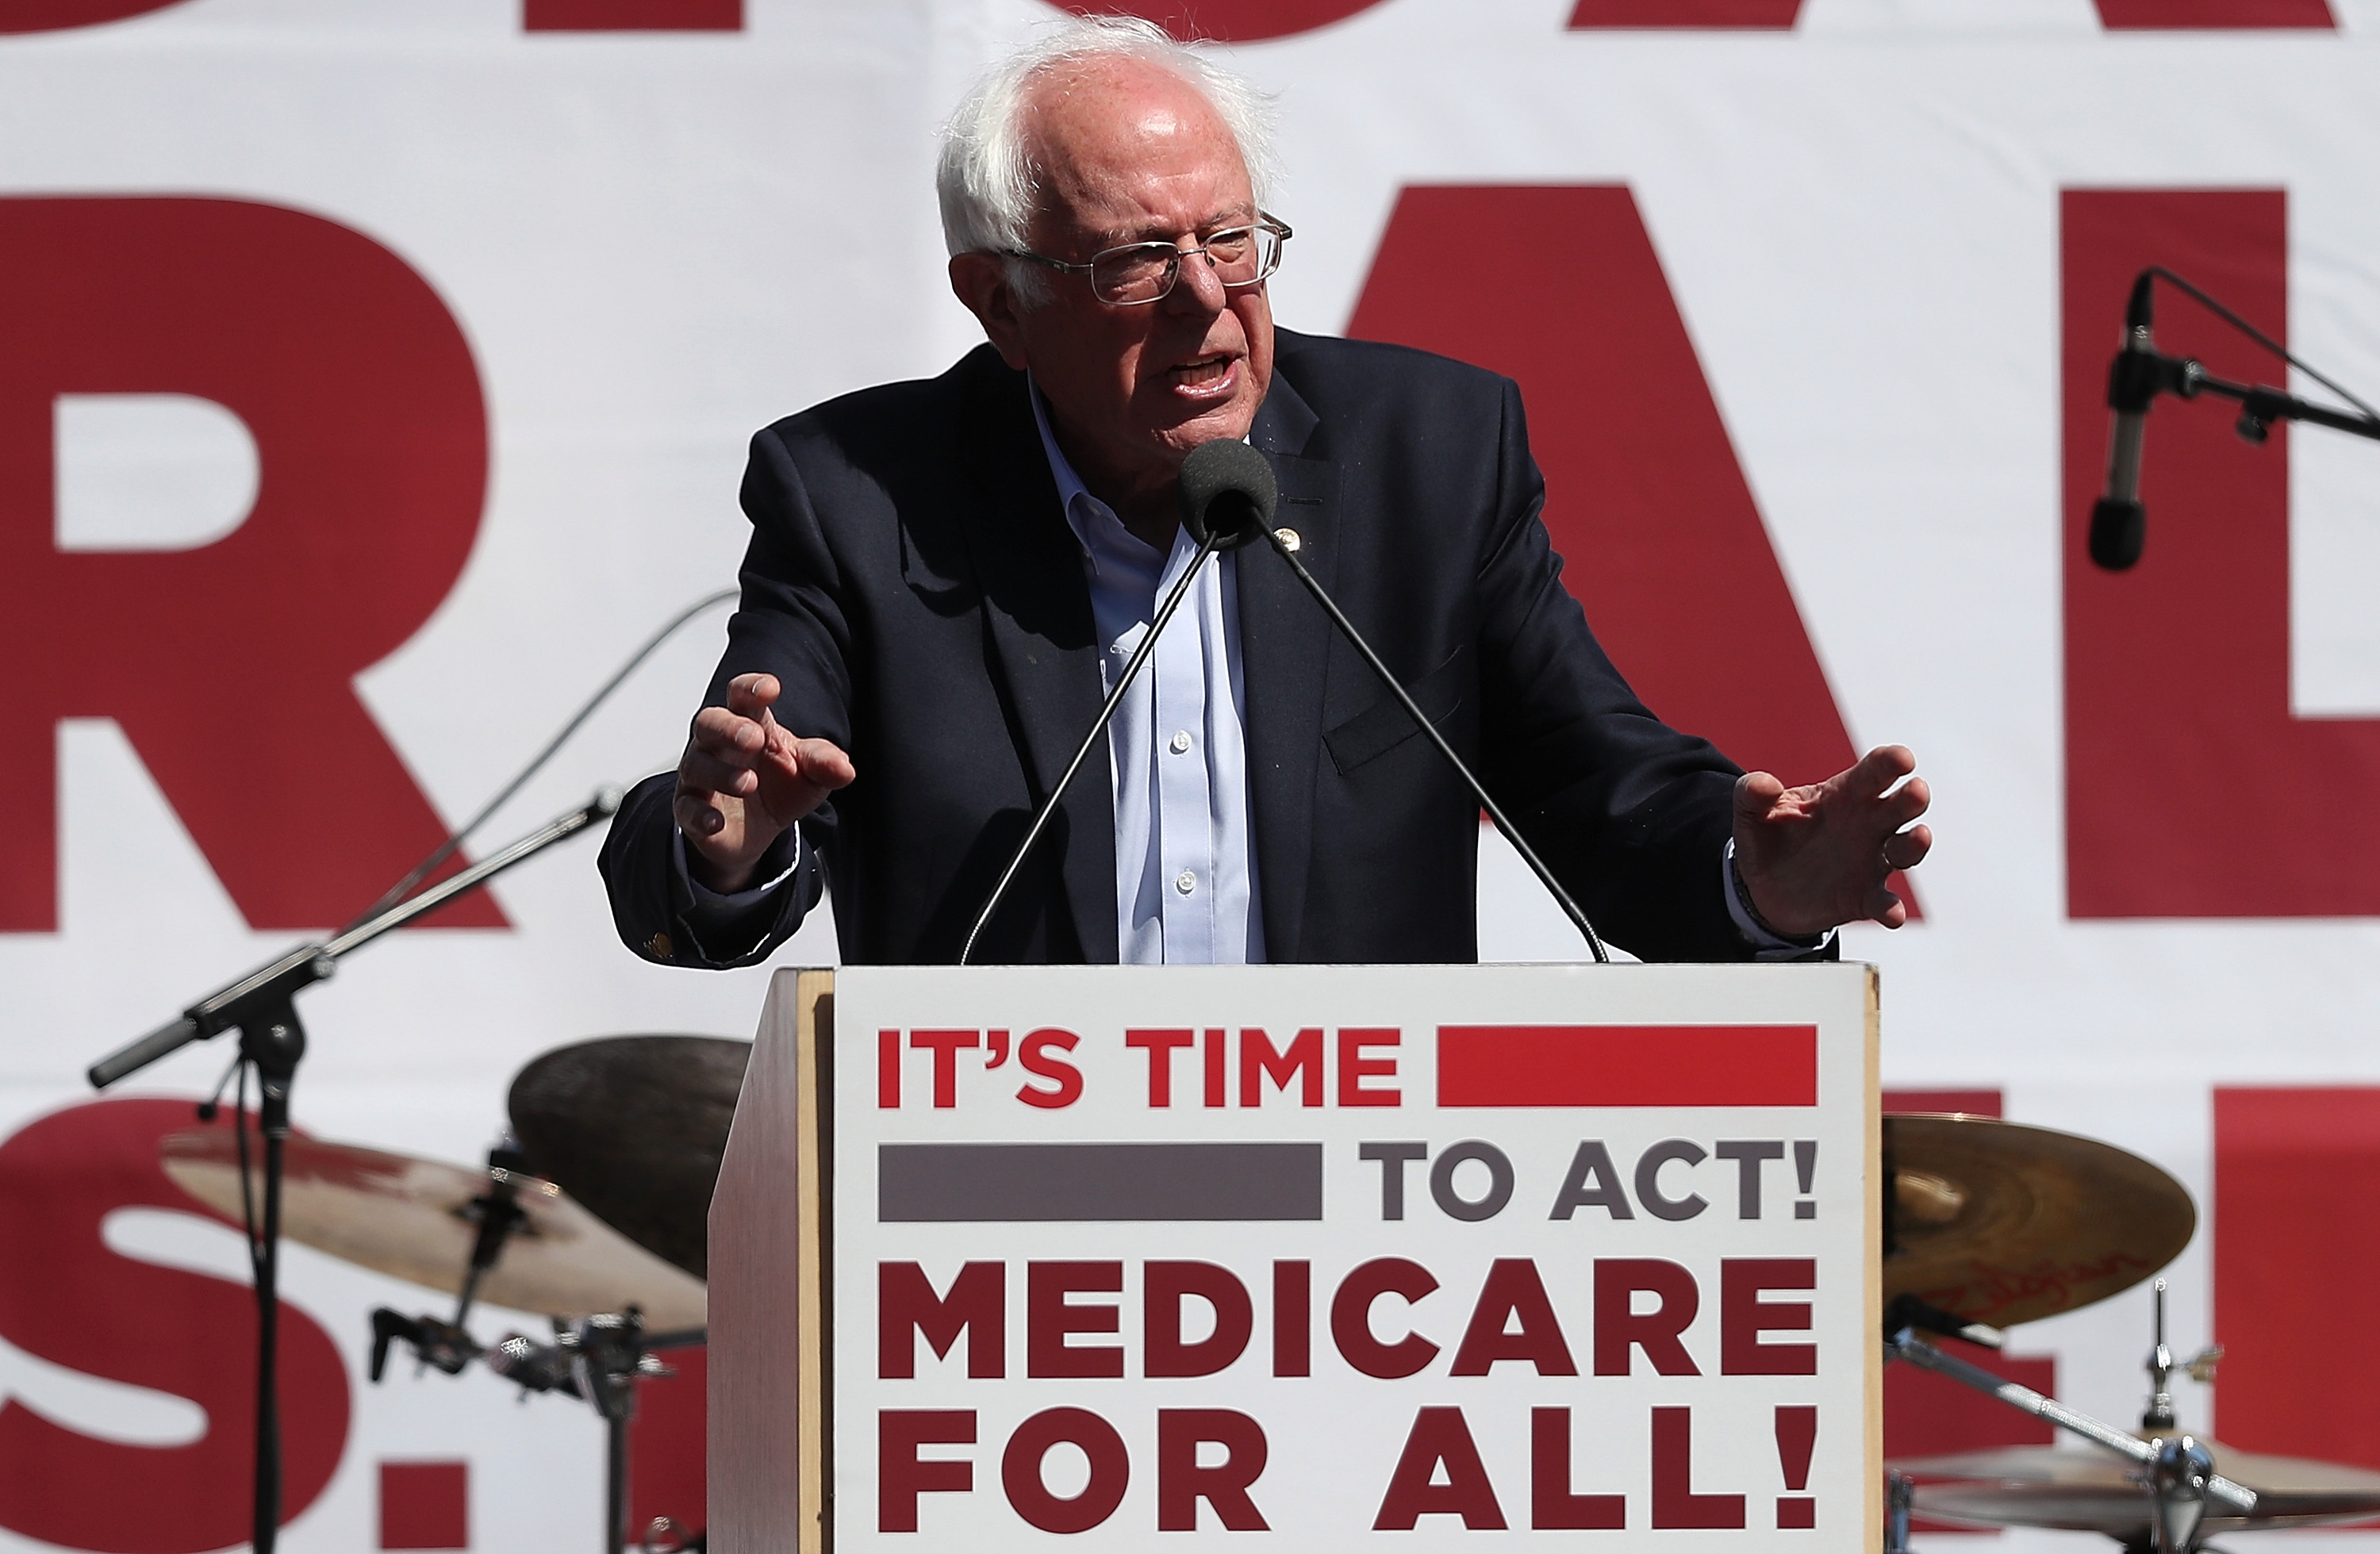 Bernie Sanders Discusses Medicare For All Bill In San Francisco